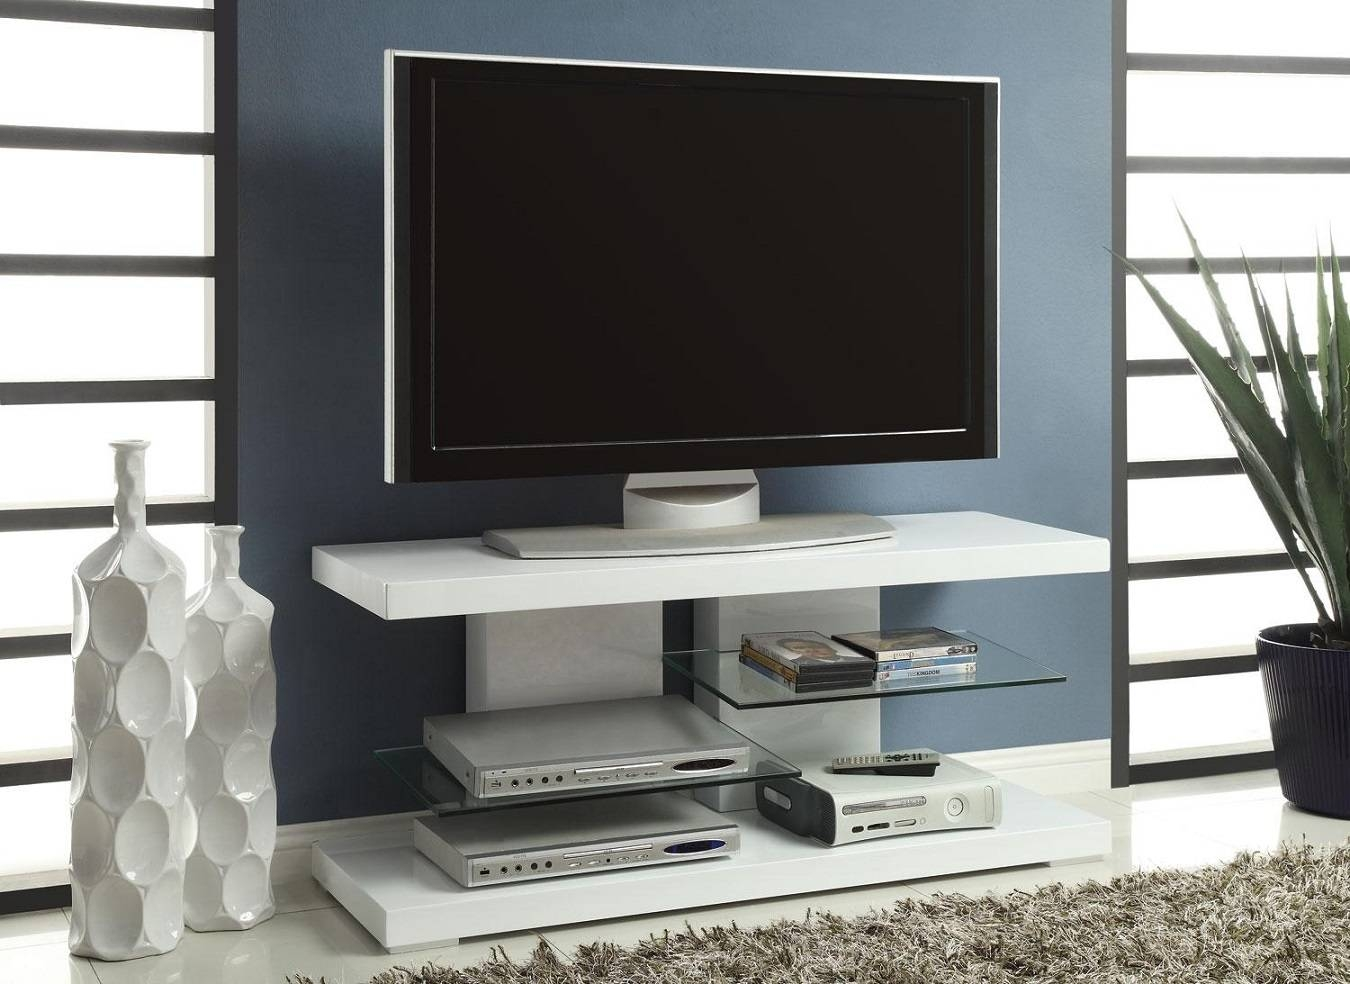 White Painted Plywood Flat Screen Tv Stand With Tempered Glass regarding Contemporary Tv Stands For Flat Screens (Image 15 of 15)